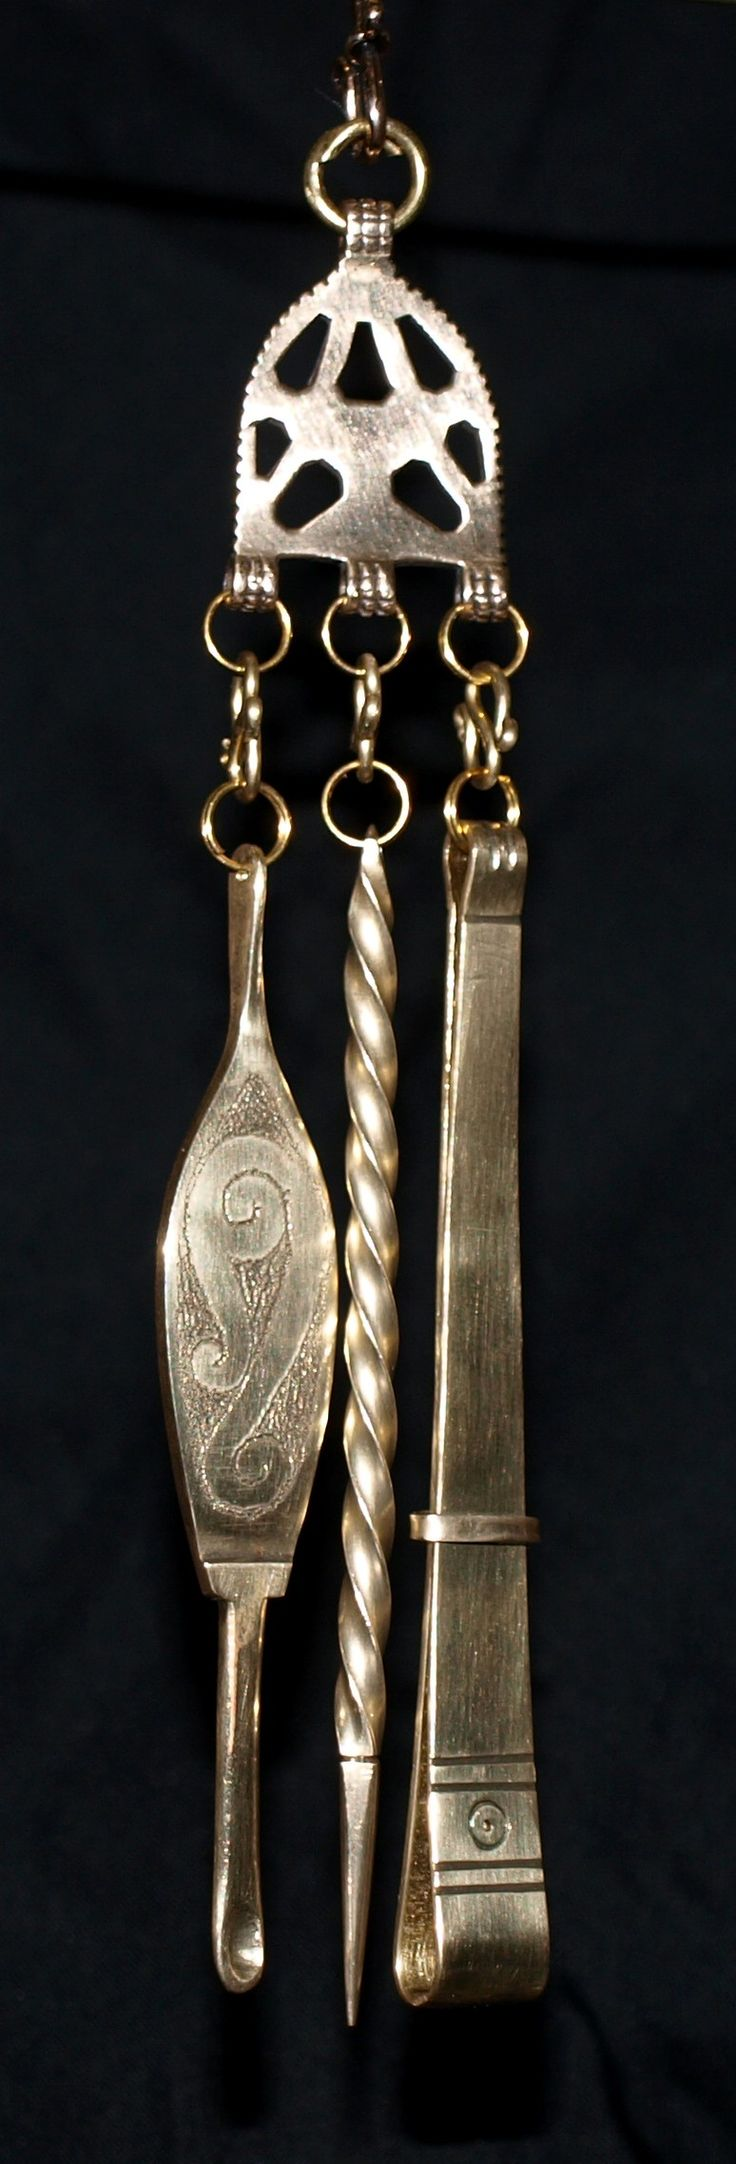 Viking toiletries; ear spoon, pick, tweezers. I like the ear spoon, don't want to think about what the pick might be for!